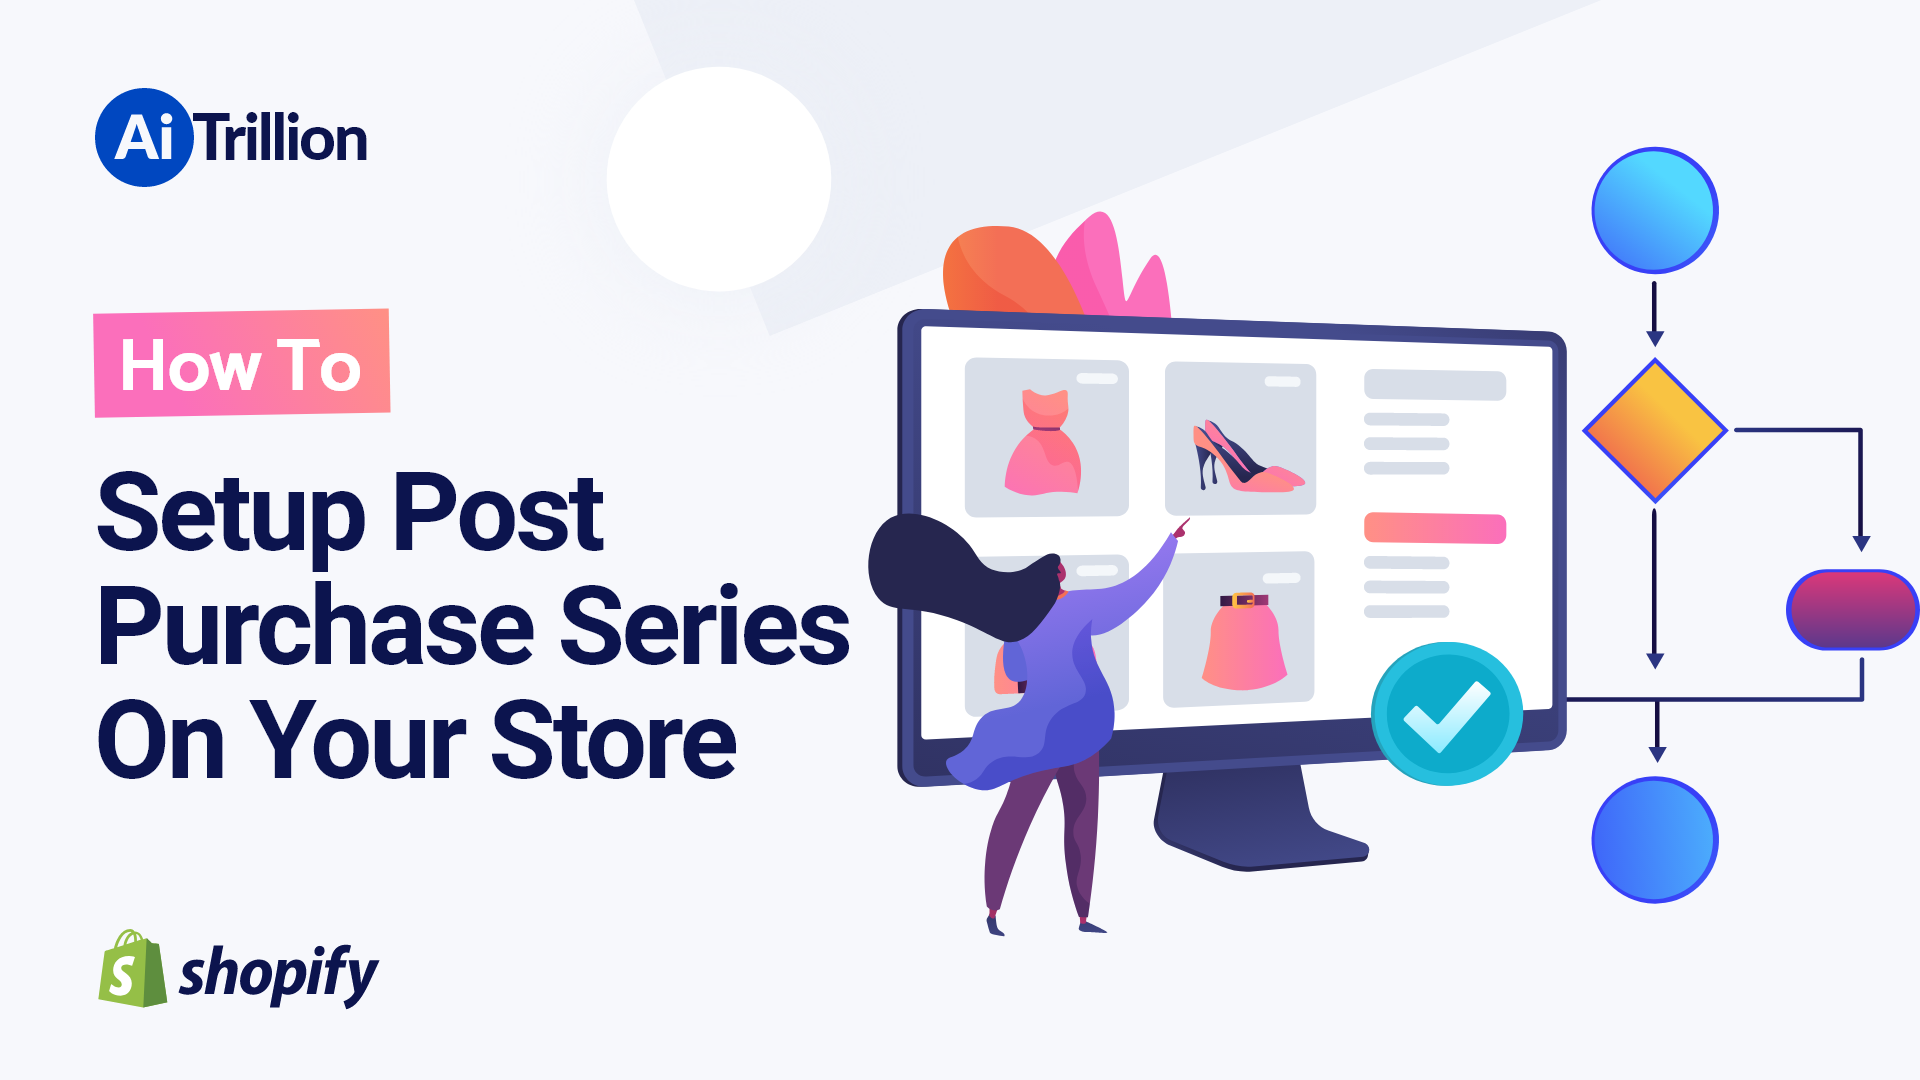 How To Setup Post Purchase Series On Your Store